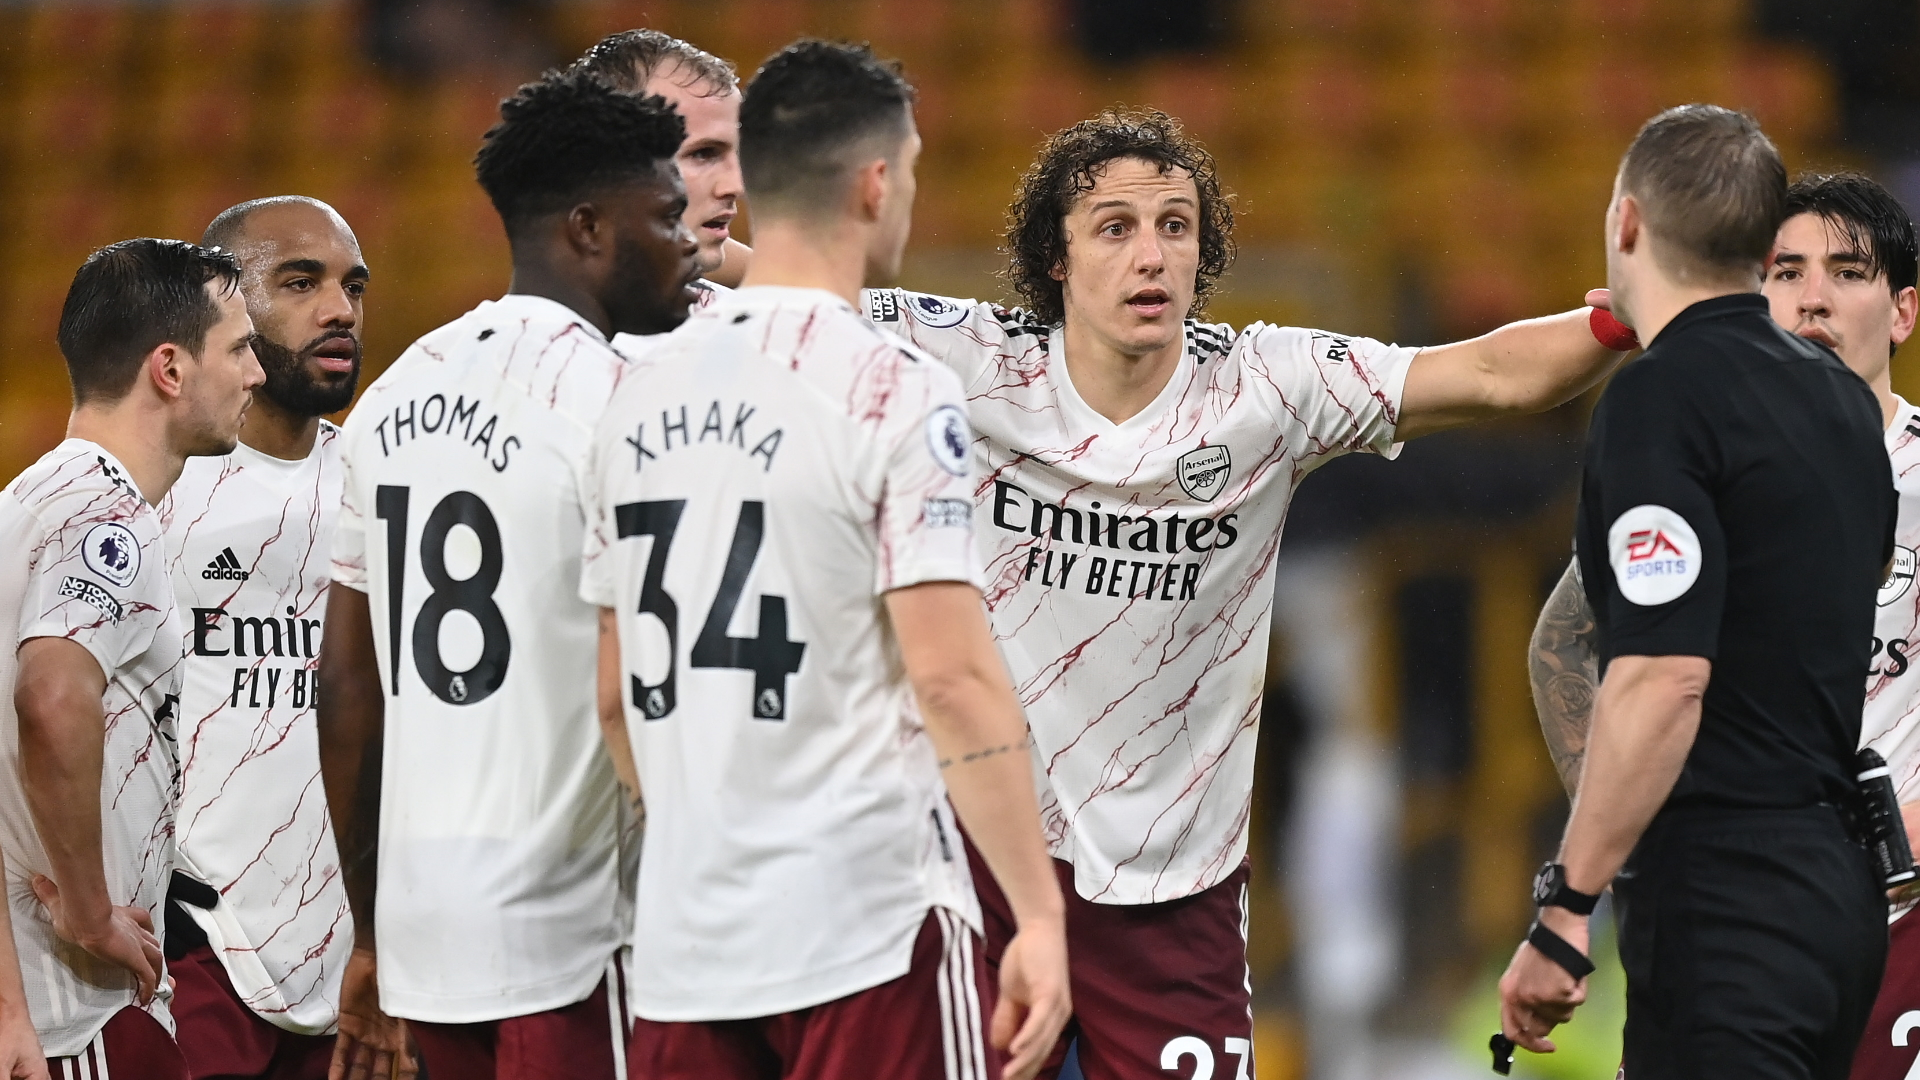 'Insanely harsh' - David Luiz red card in Wolves vs Arsenal clash sparks furious debate